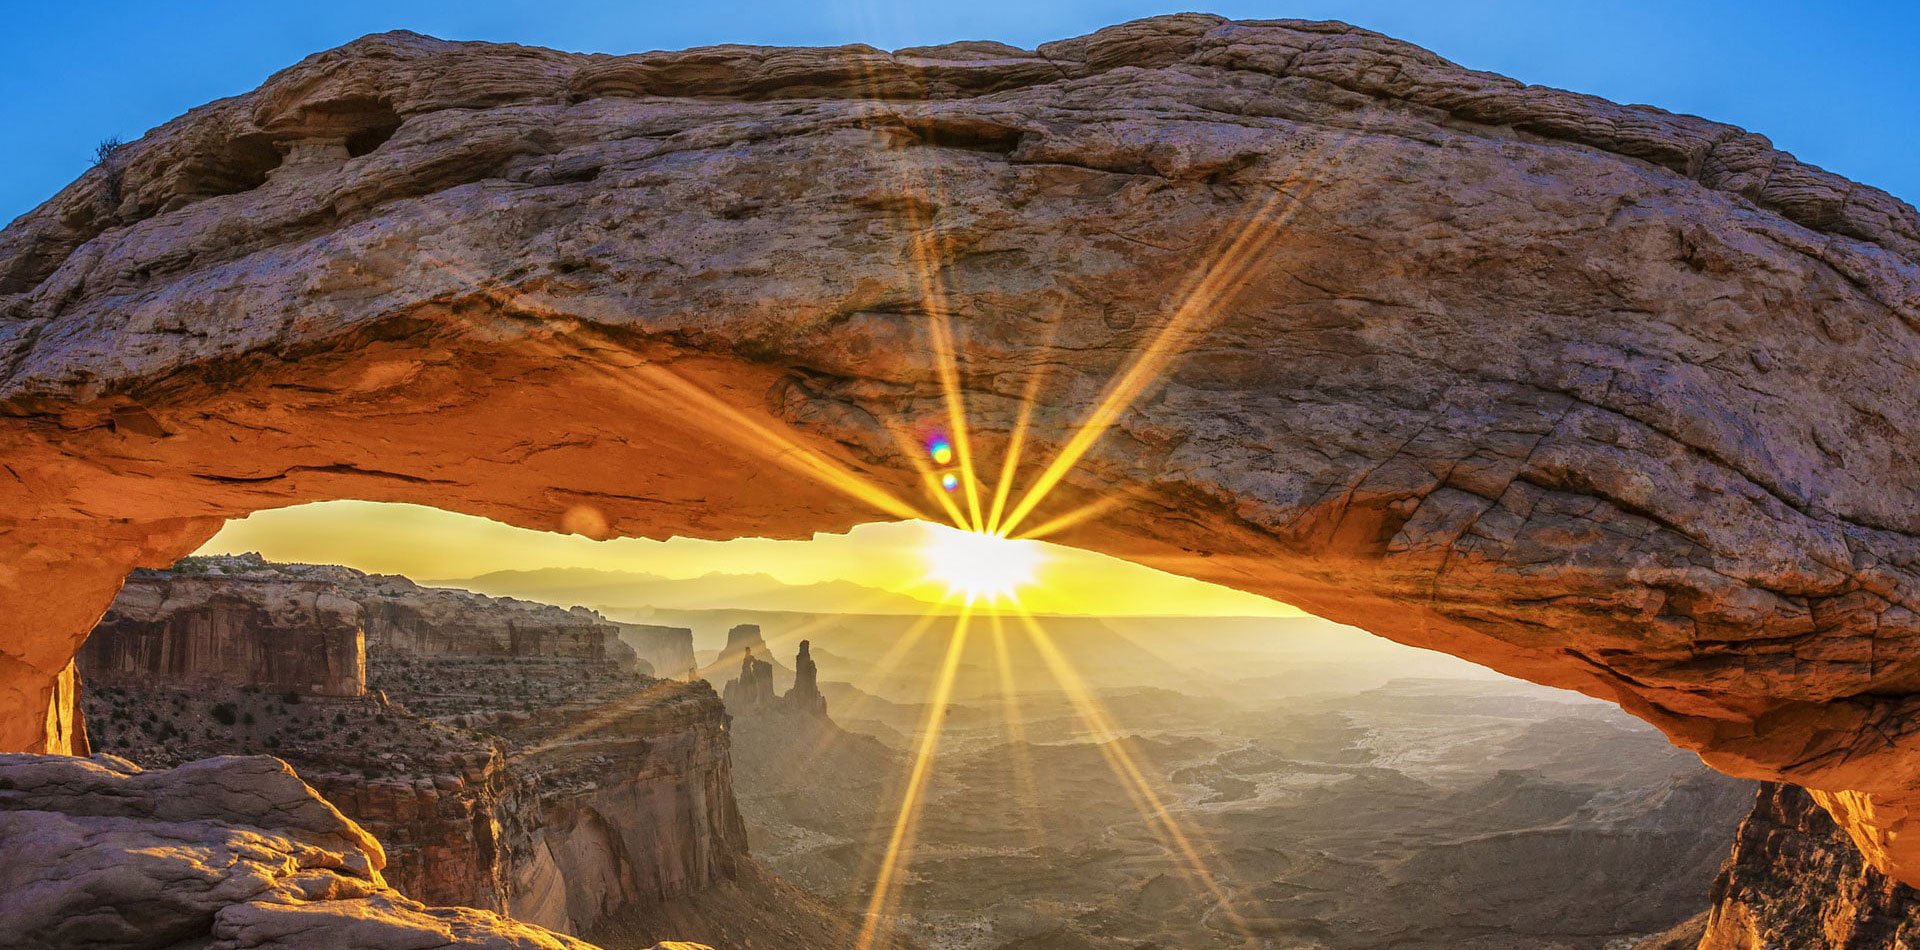 A large panoramic view of the underside of a large sandstone arch with the rays of the sun shining through at Arches National Park in Moab, Utah.